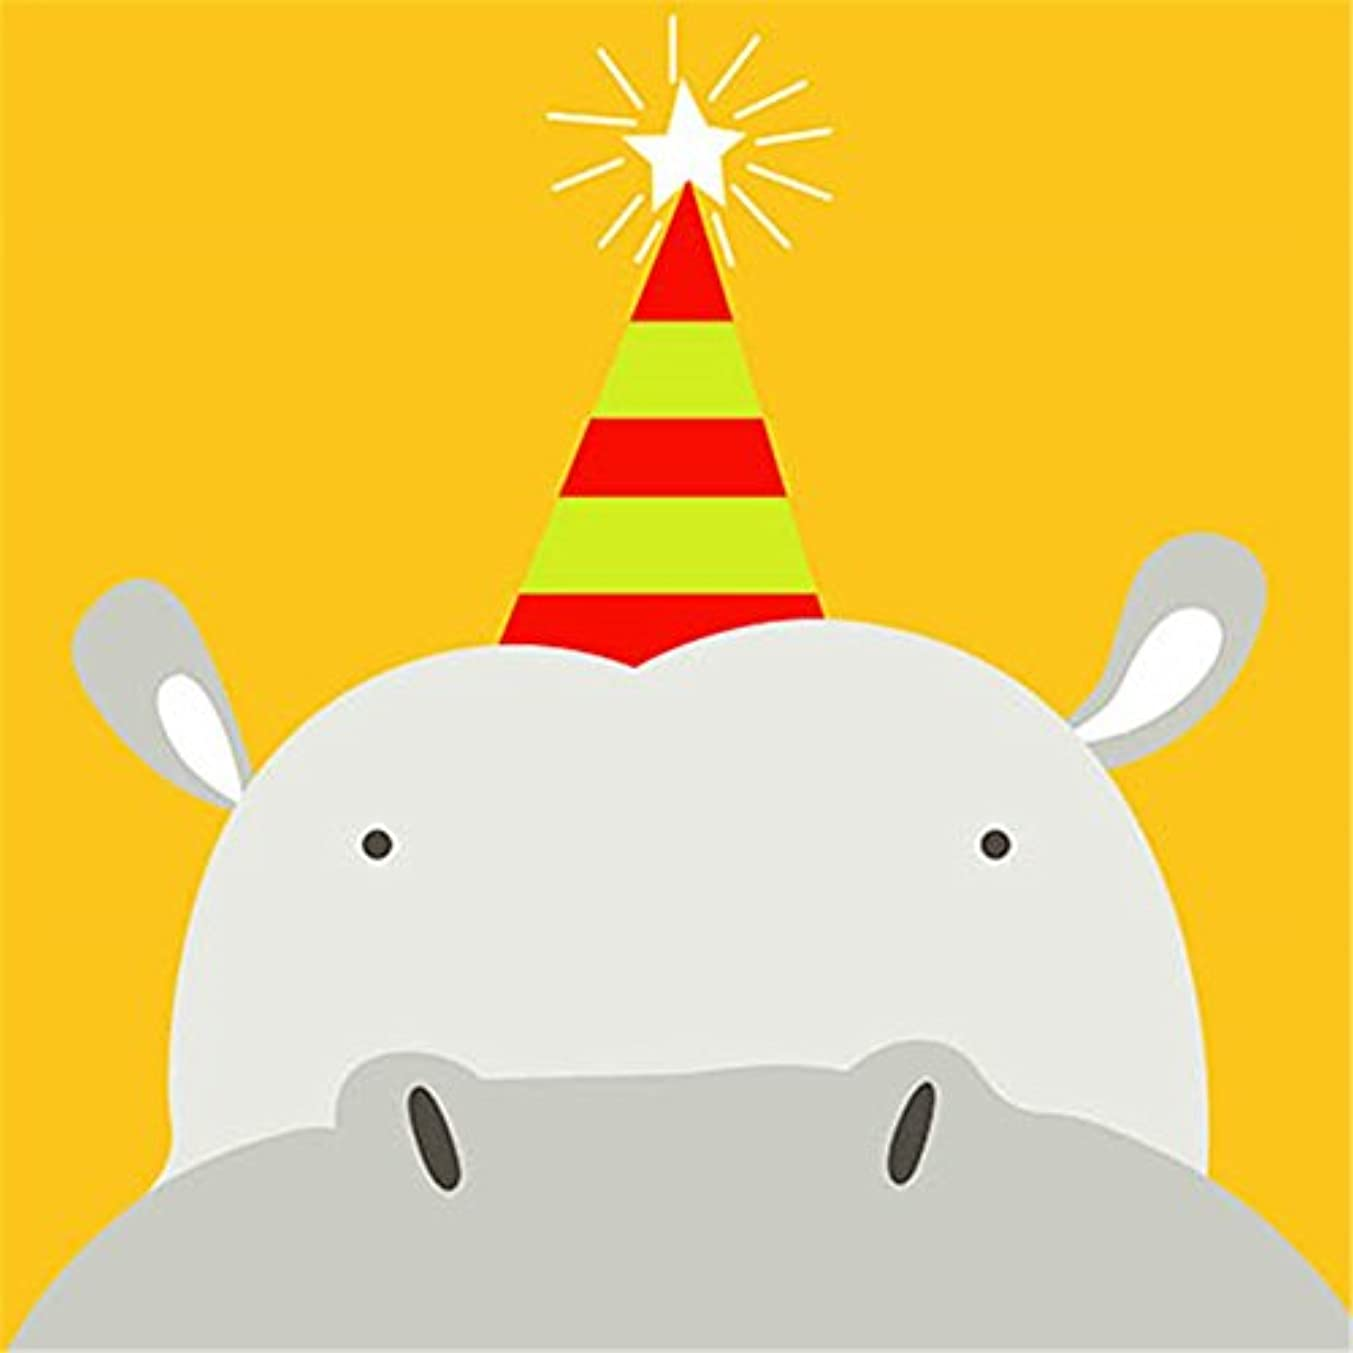 YEESAM ART New Paint by Numbers for Kids Children Beginner - Animal Hippo & Birthday Star Cap 8x8 inch Linen Canvas - DIY Number Painting (Hippo)